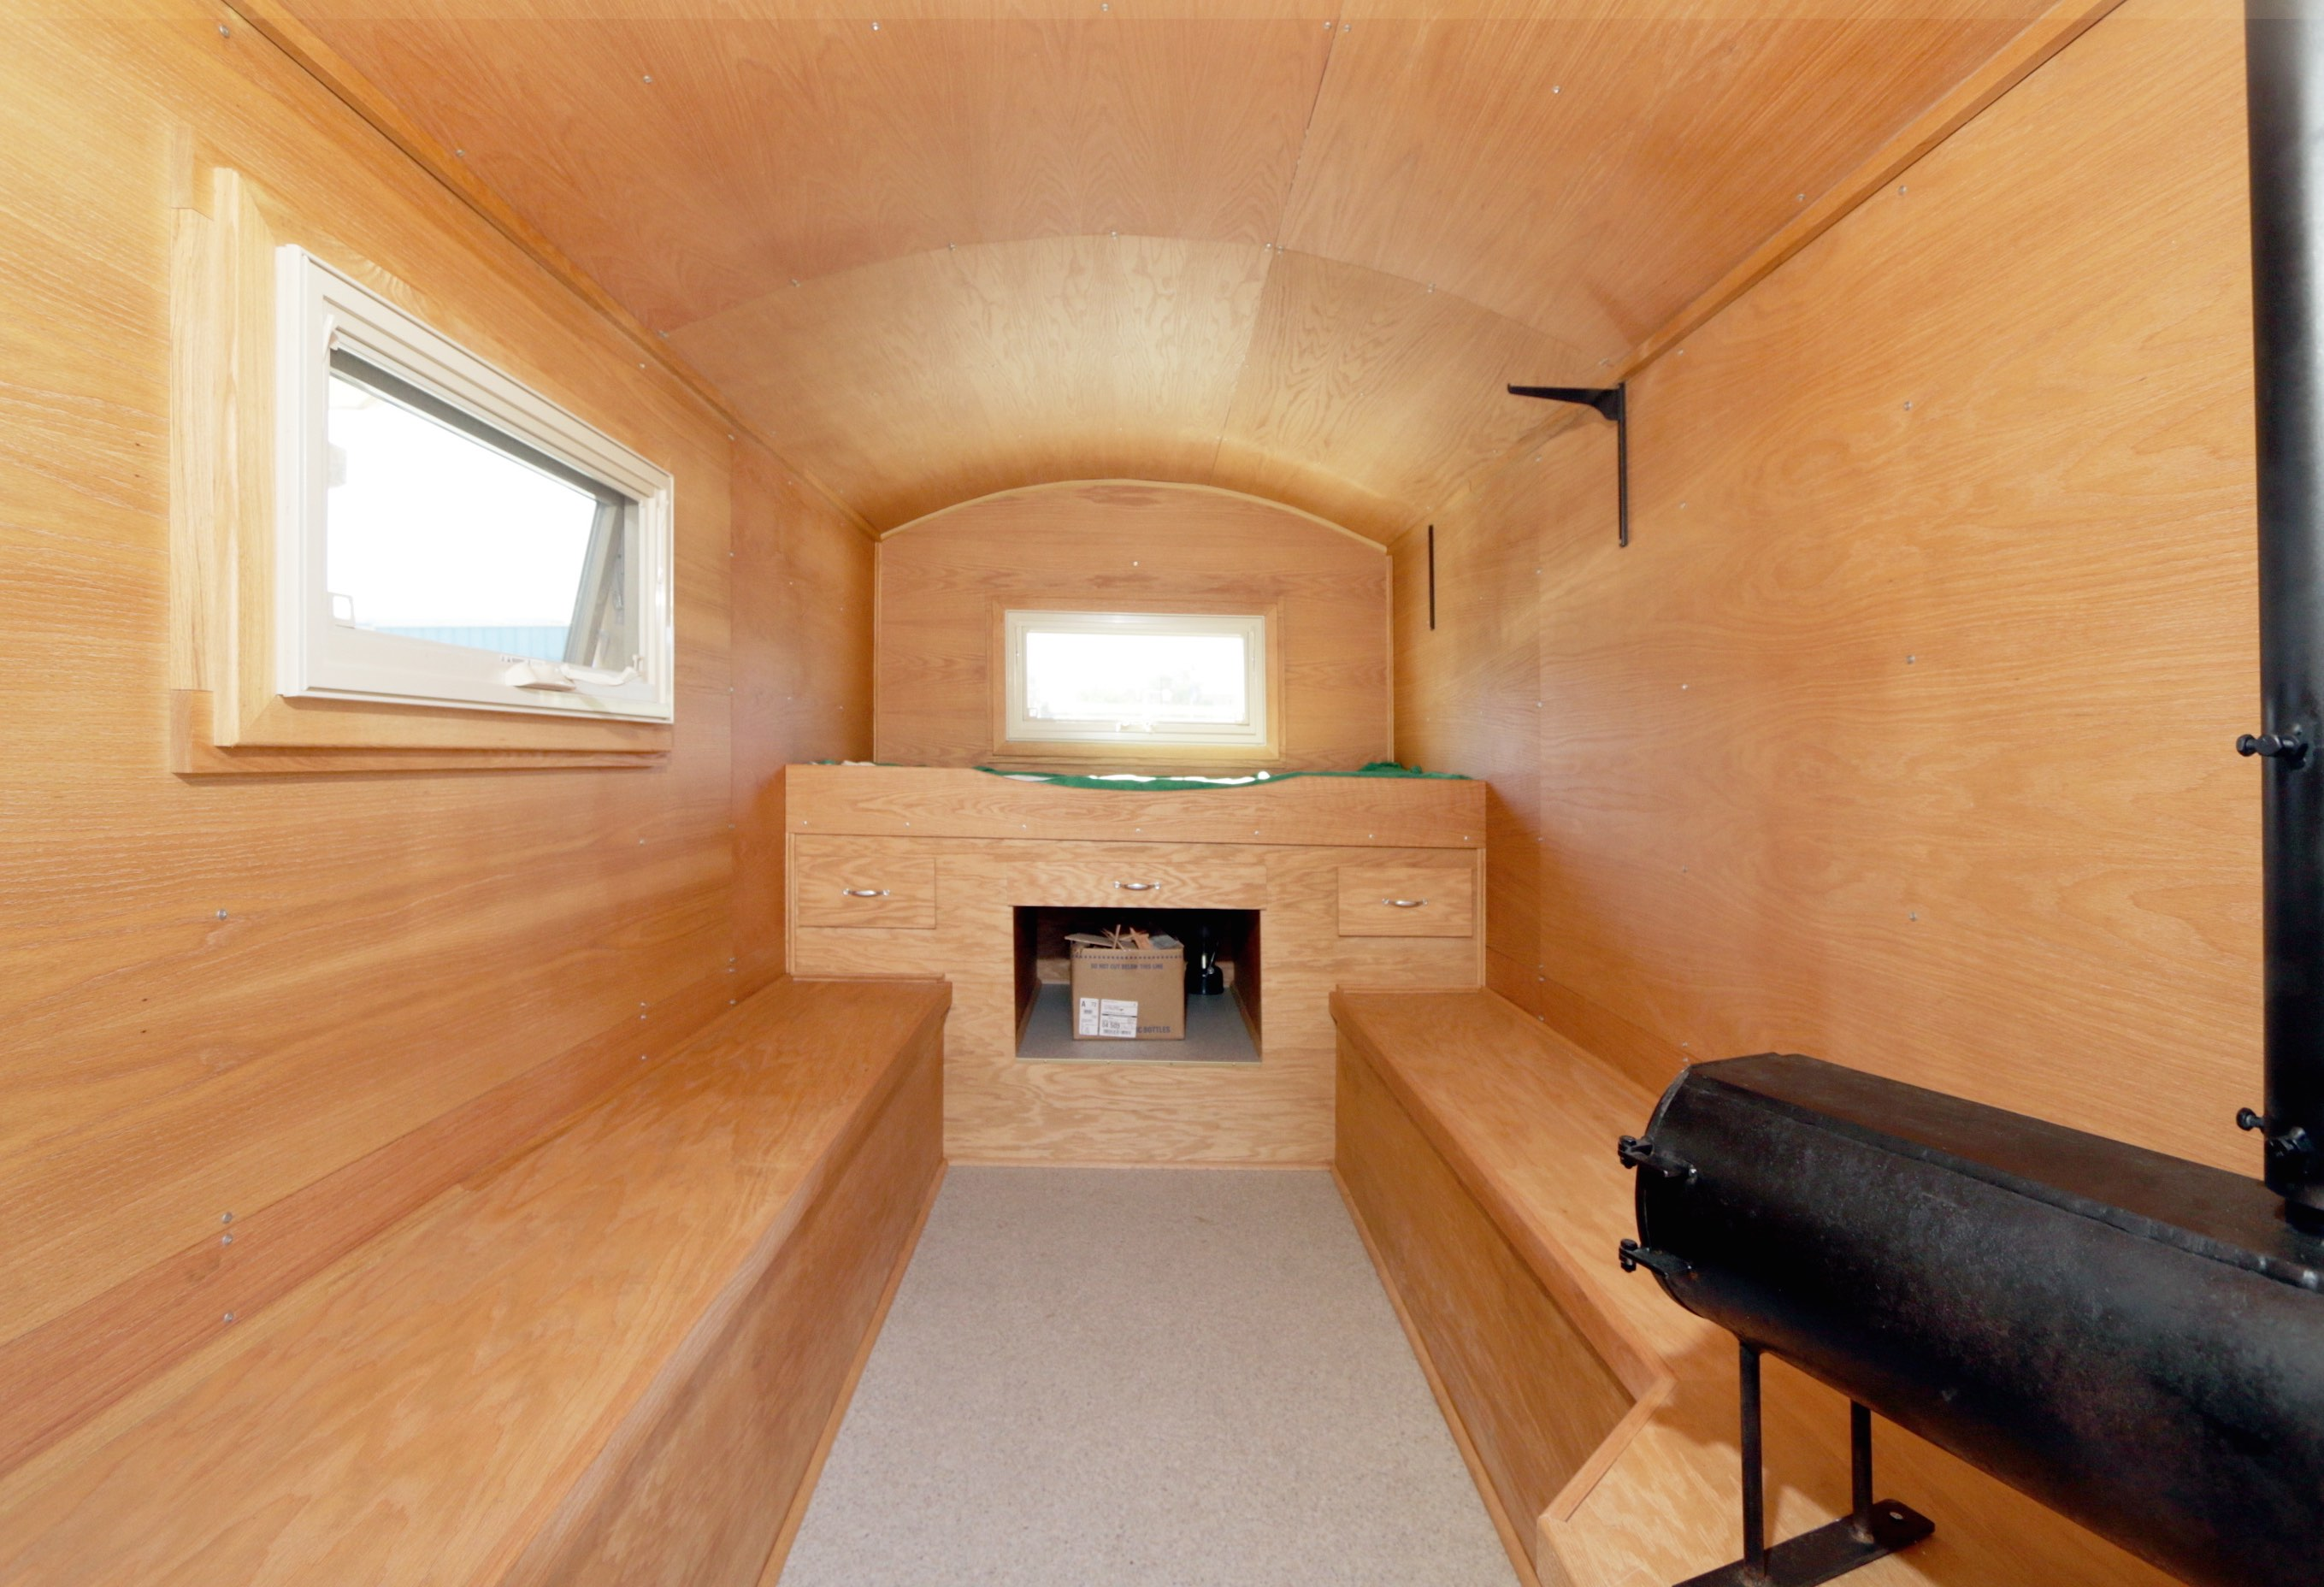 84 Sq Ft Shepherd S Wagon Tiny House For Sale